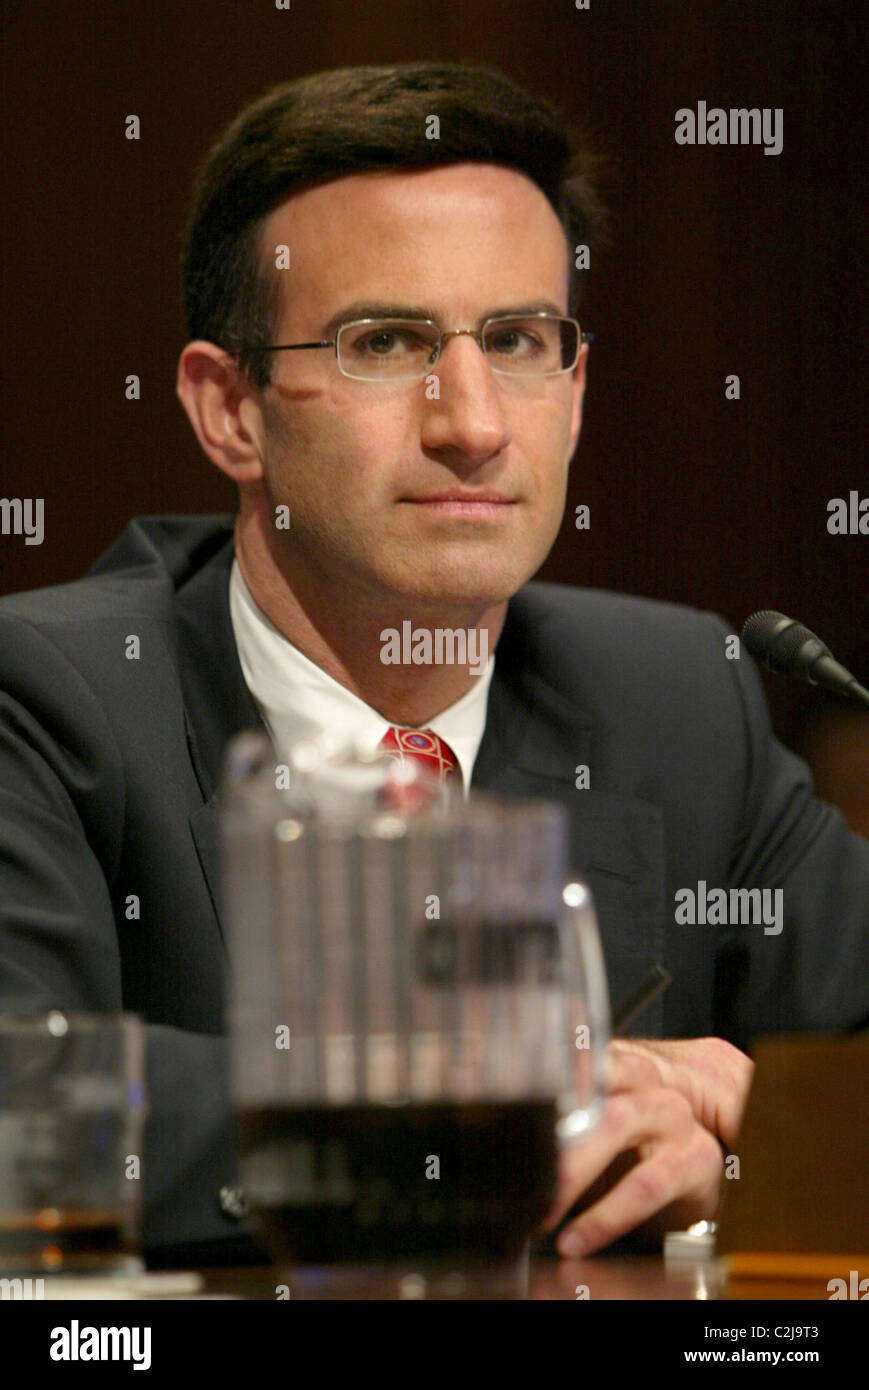 Congressional budget office stock photos congressional budget office stock images alamy - Congressional budget office ...